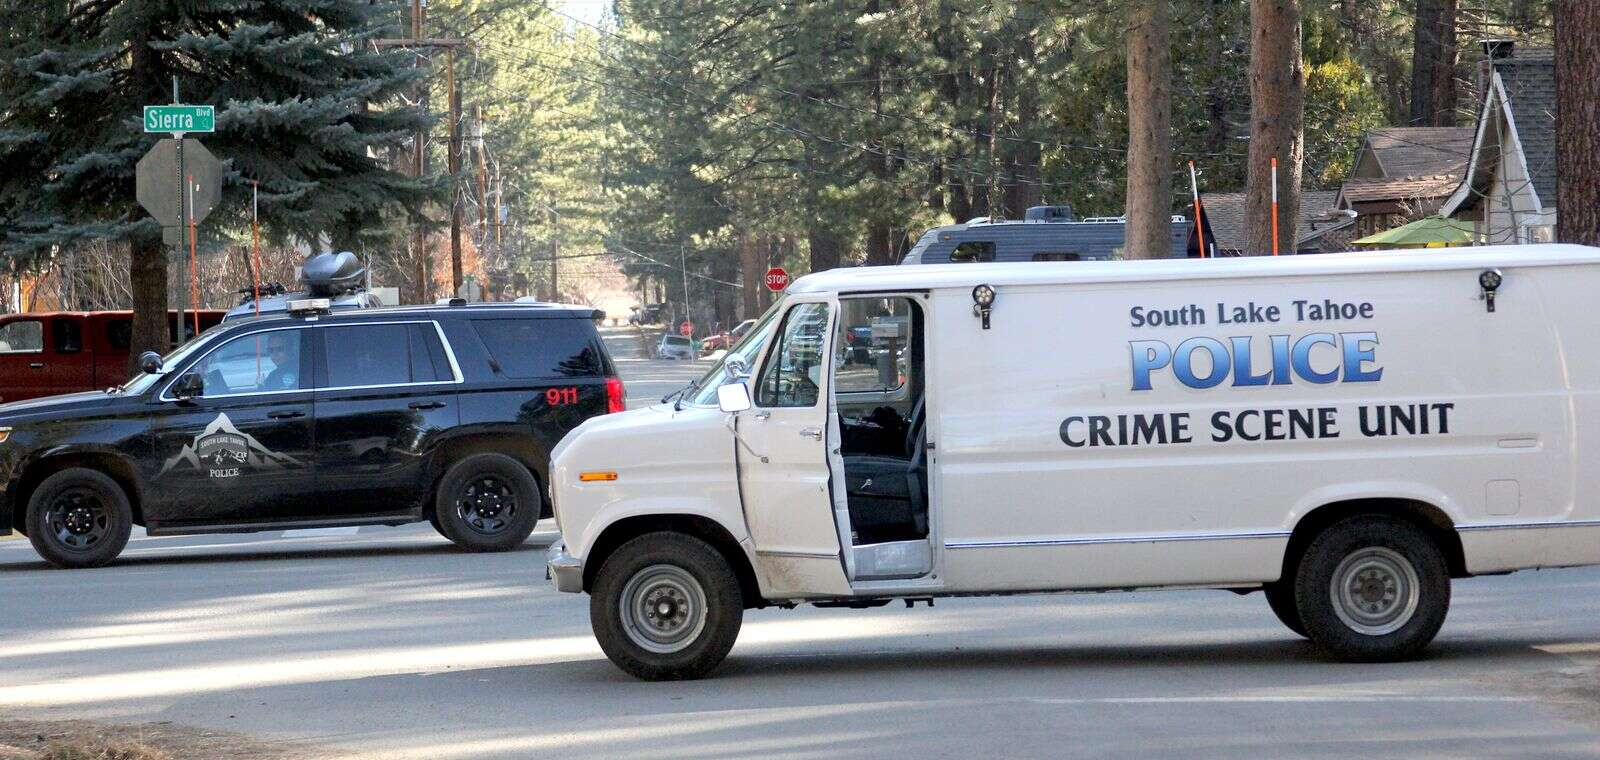 Authorities are investigating a possible homicide that took place early Wednesday in South Lake Tahoe